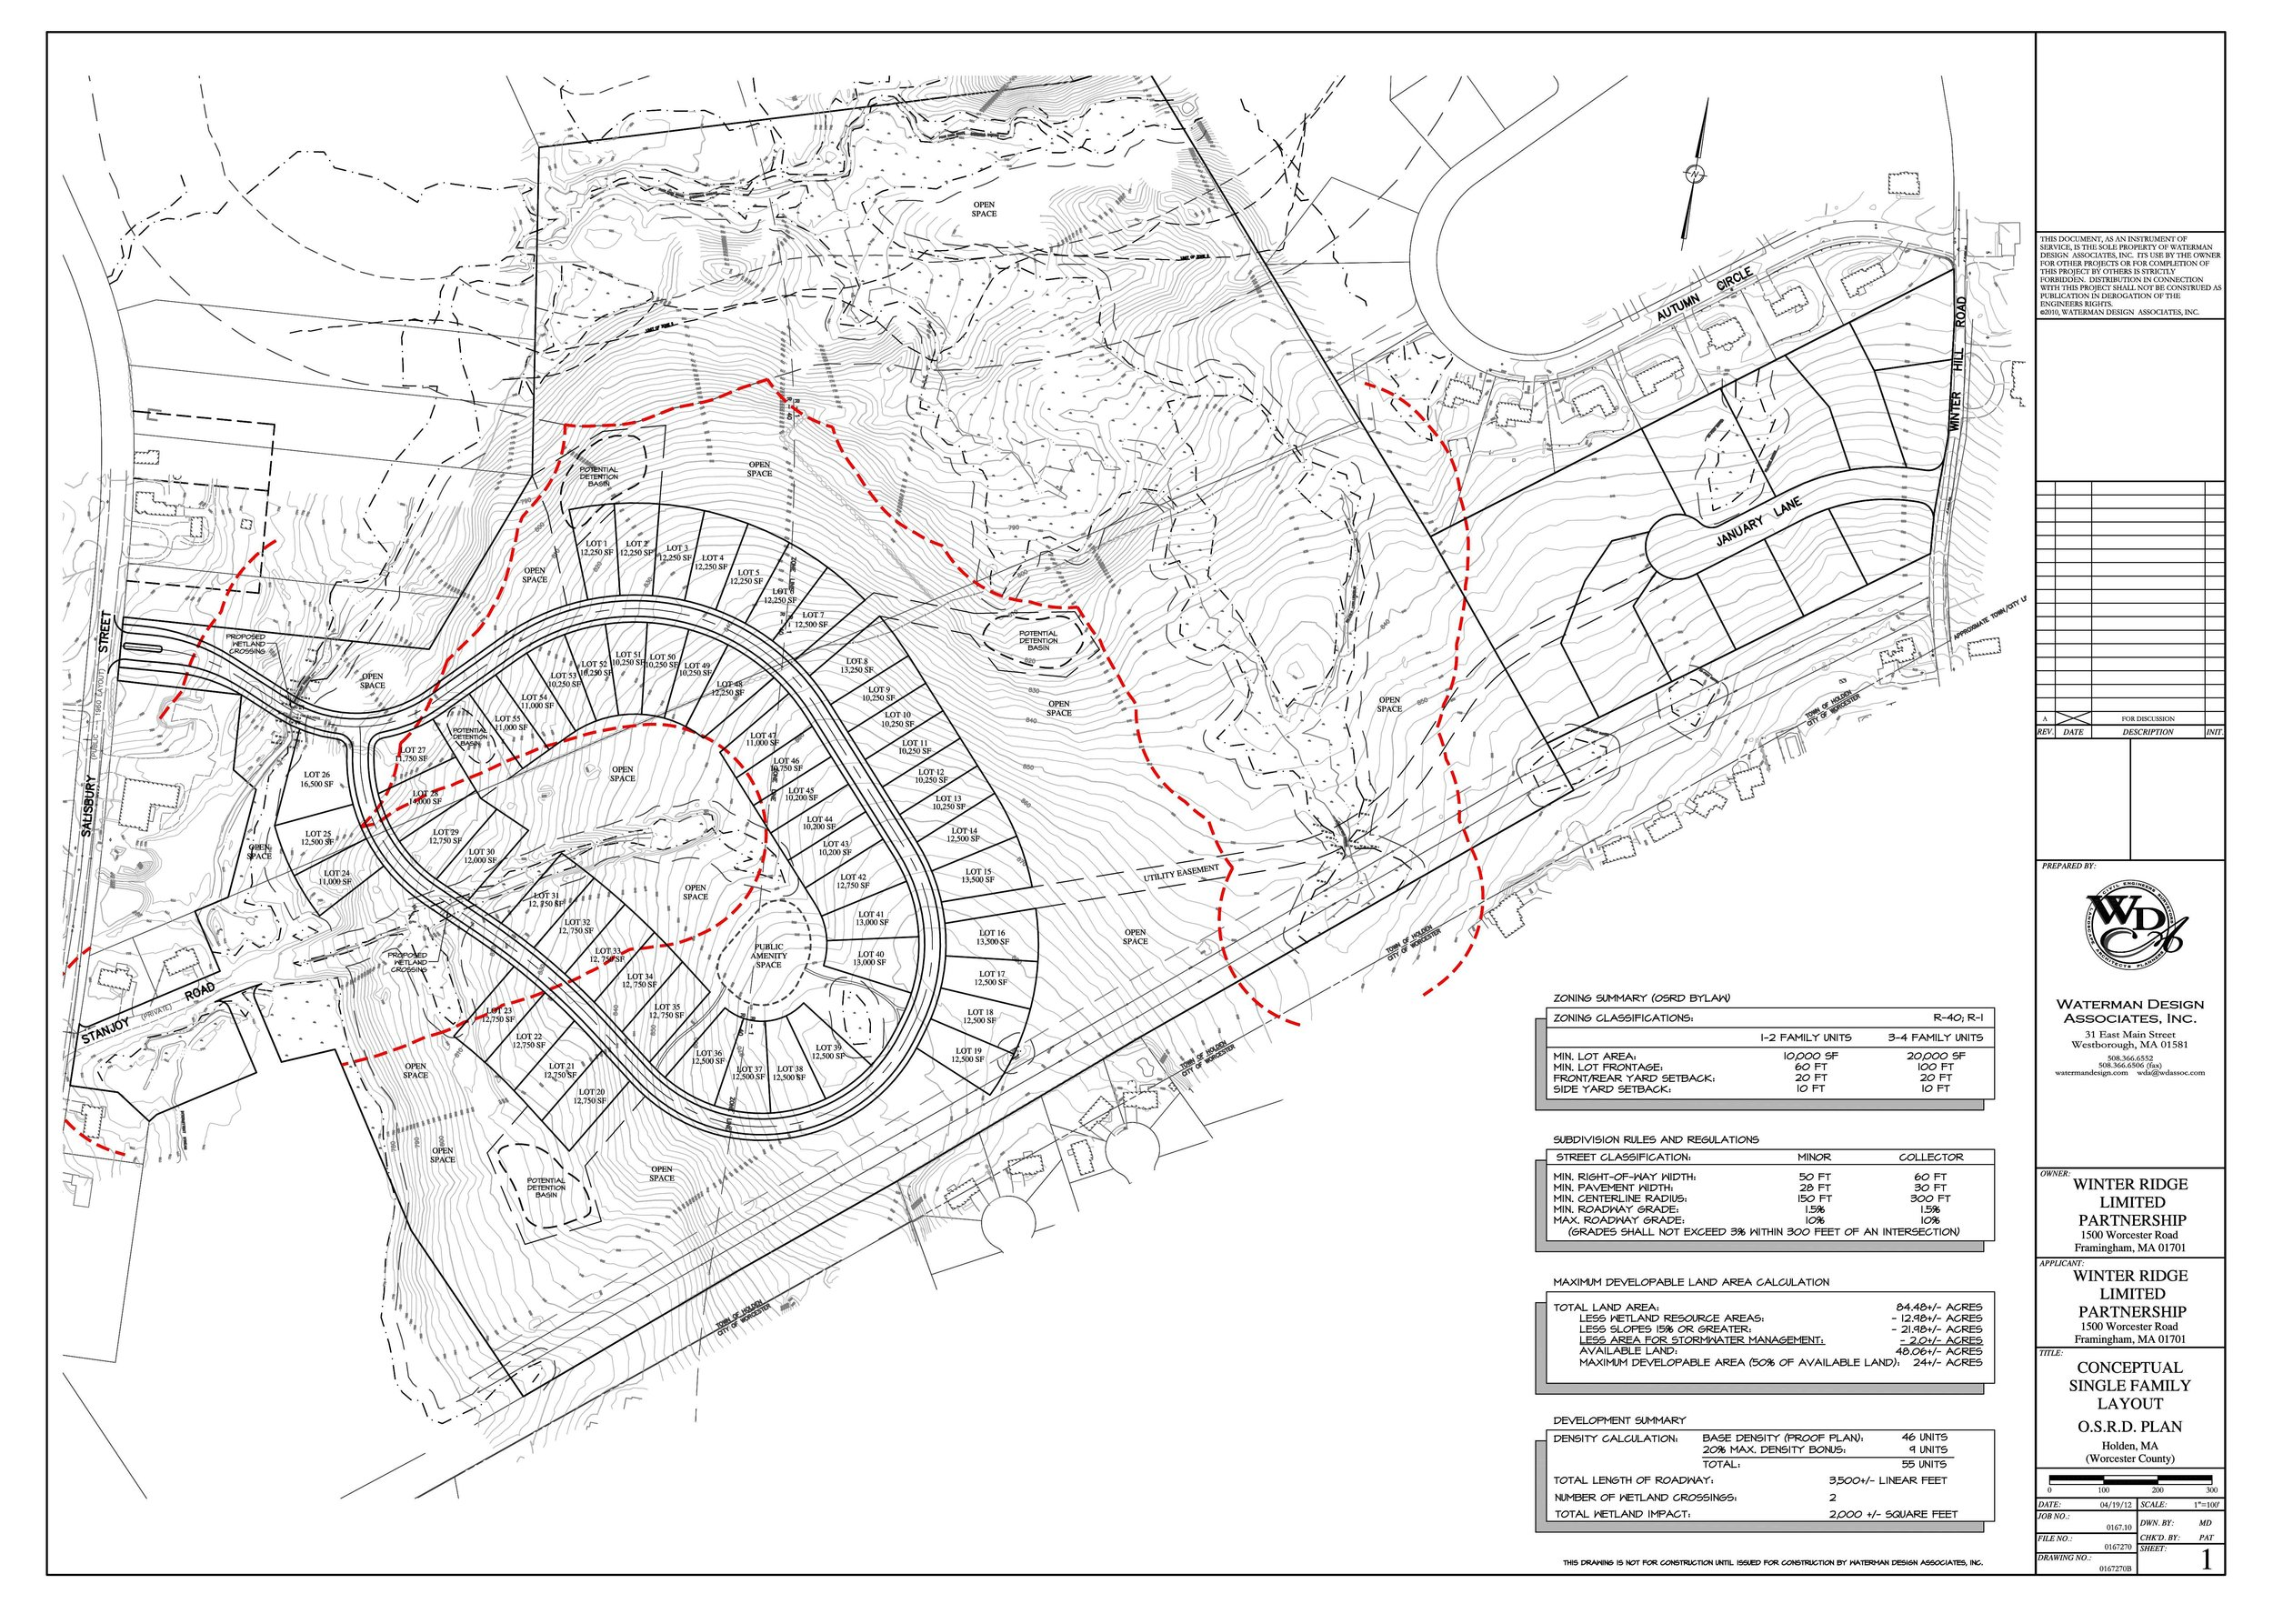 Subdivisions - Single-family home subdivision projects located in Carver, Dighton, Holden, Milton, Kingston, and Norwell, Massachusetts.